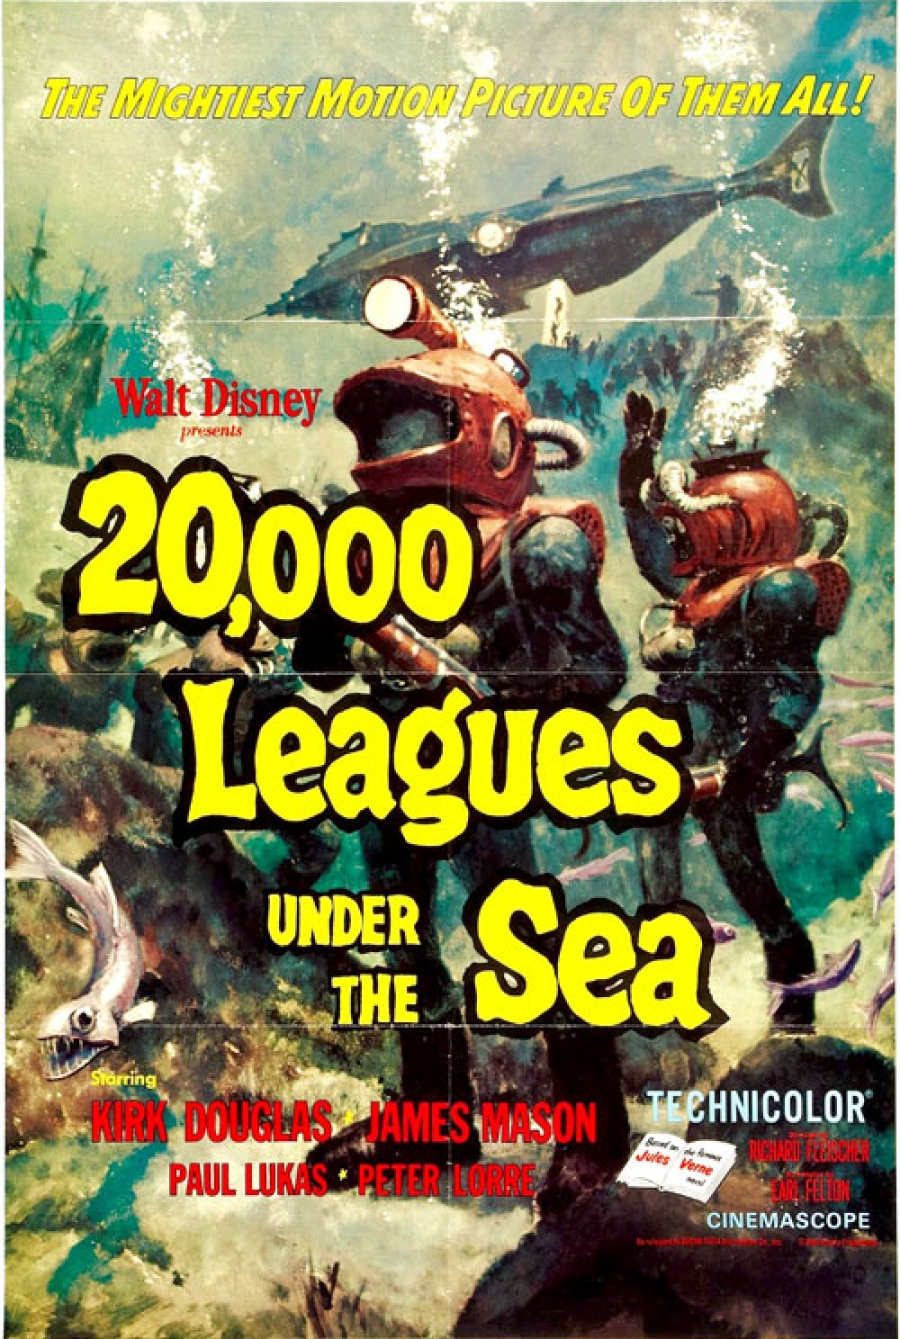 20,000 Leagues Under the Sea is coming to Blu-ray as a